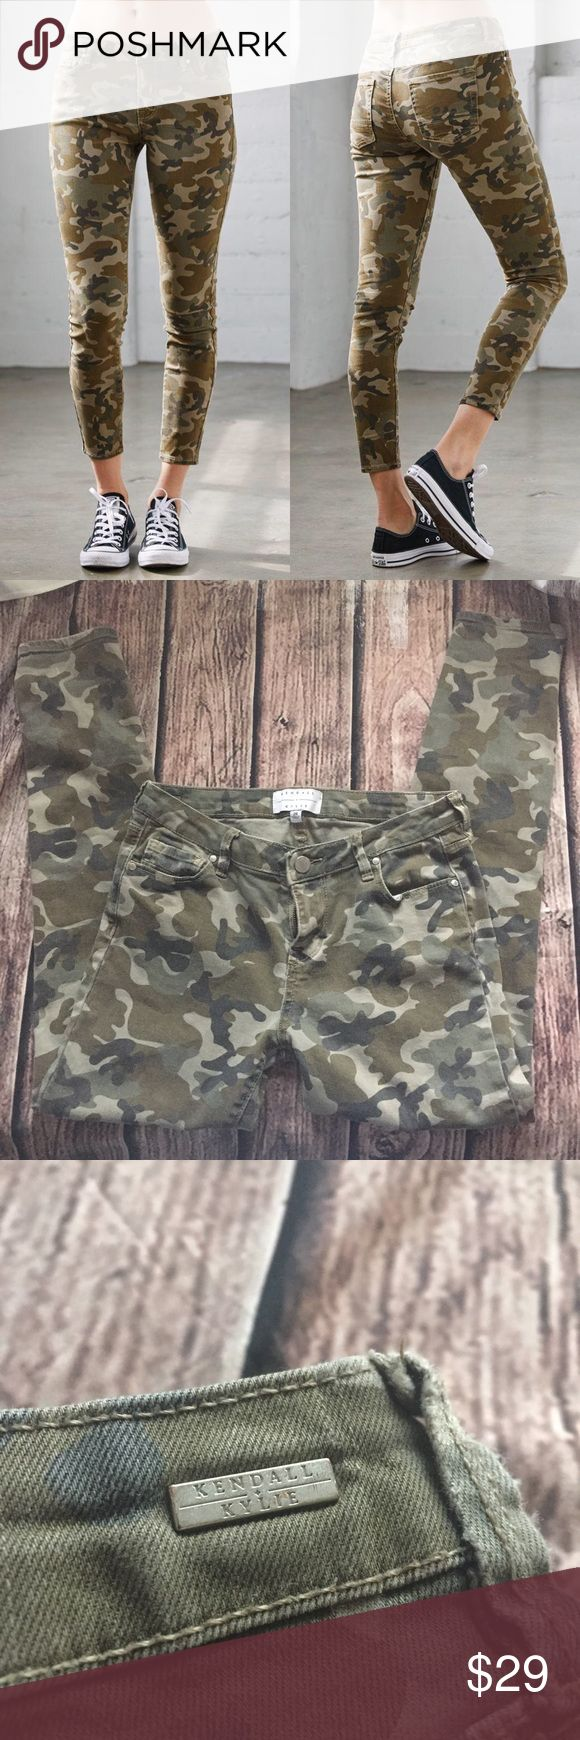 Kendall + Kylie camouflage skinnies size 26 // Kendall + Kylie camouflage skinnies. Kendall & Kylie Pants Skinny